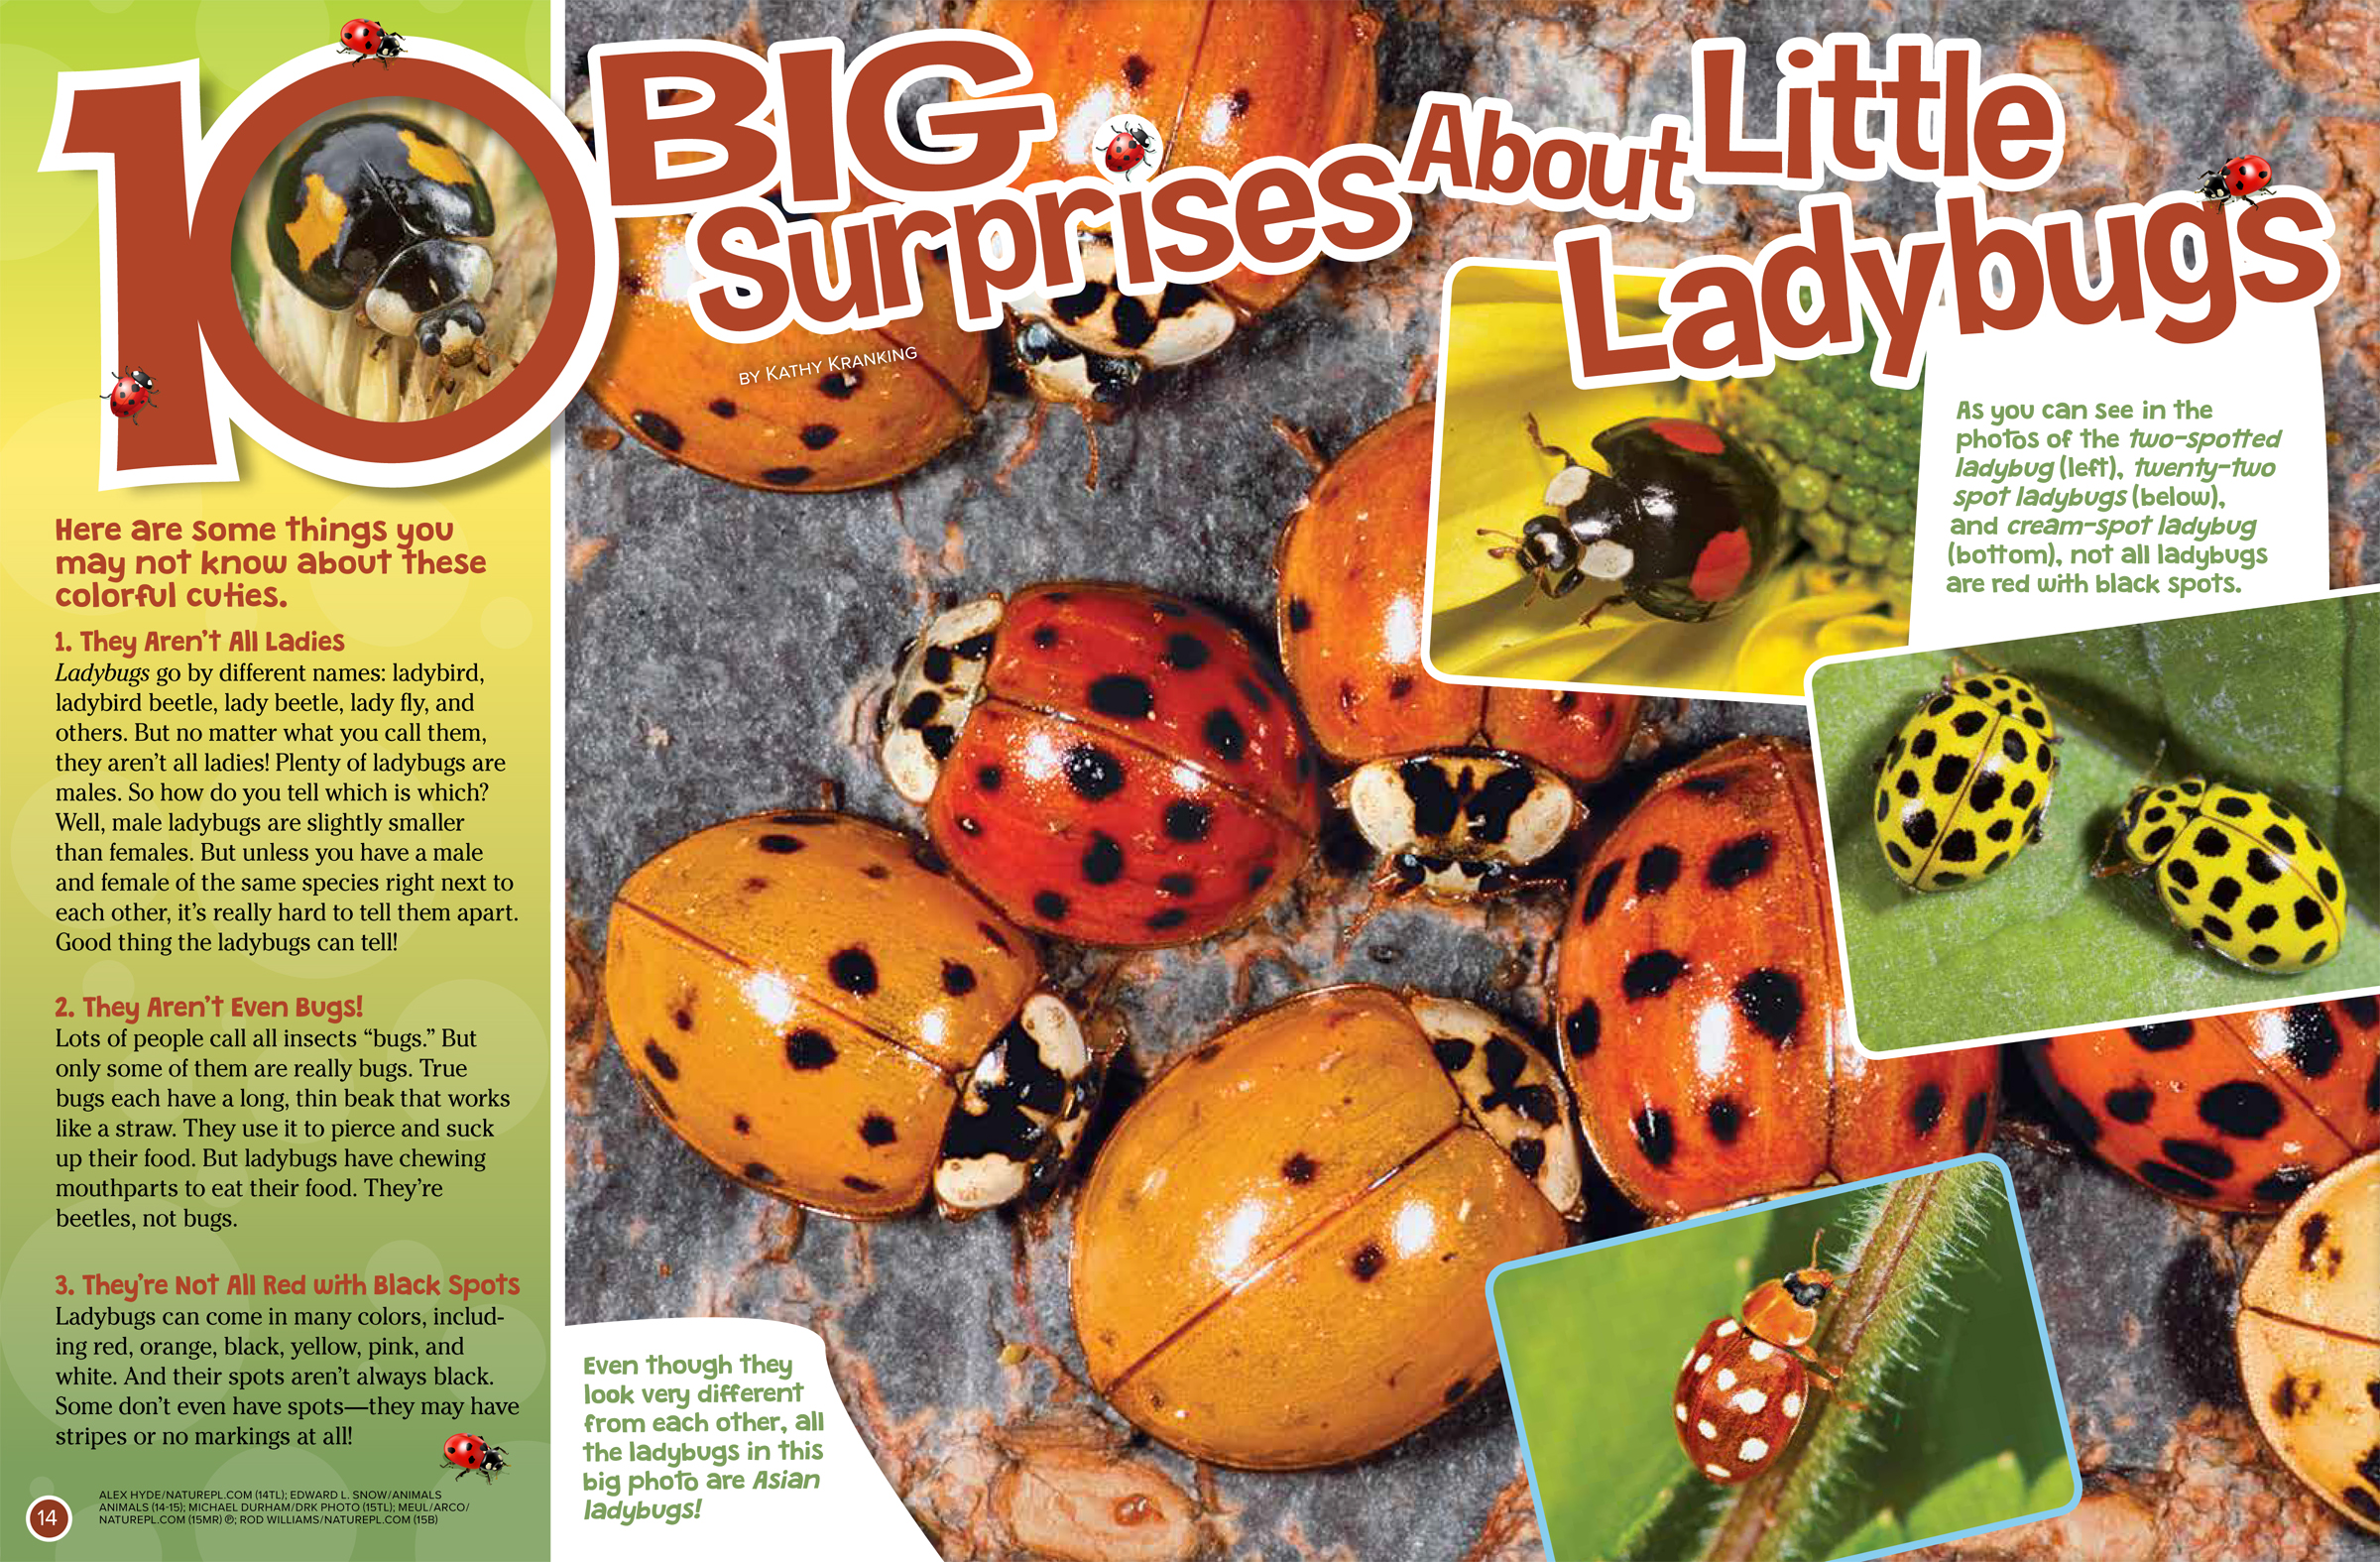 10 Big Surprises About Ladybugs - NWF | Ranger Rick